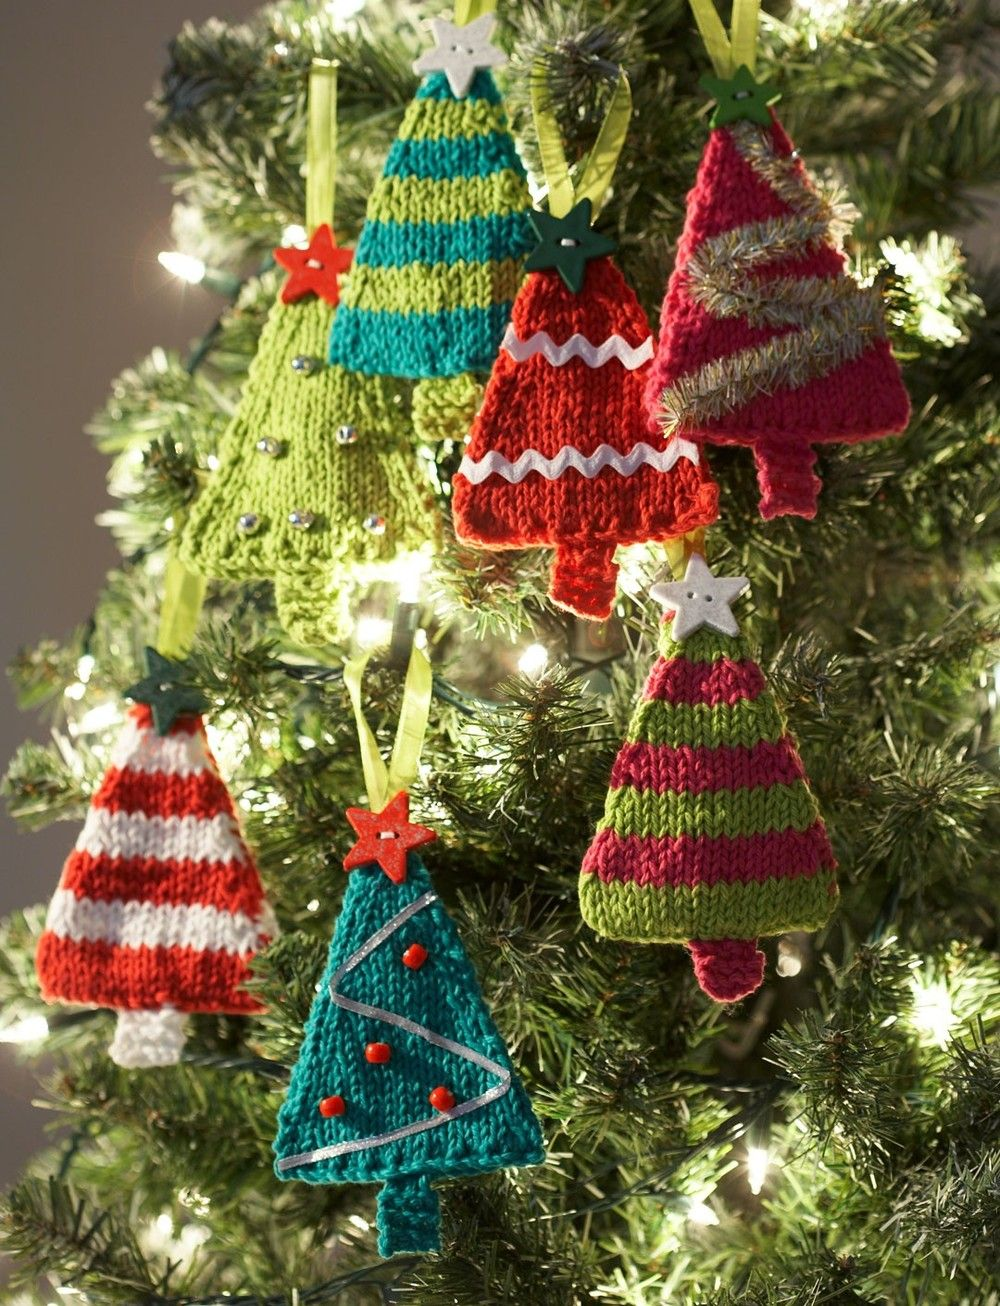 Tiny Tree Ornaments | Knitting | Pinterest | Christmas knitting ...